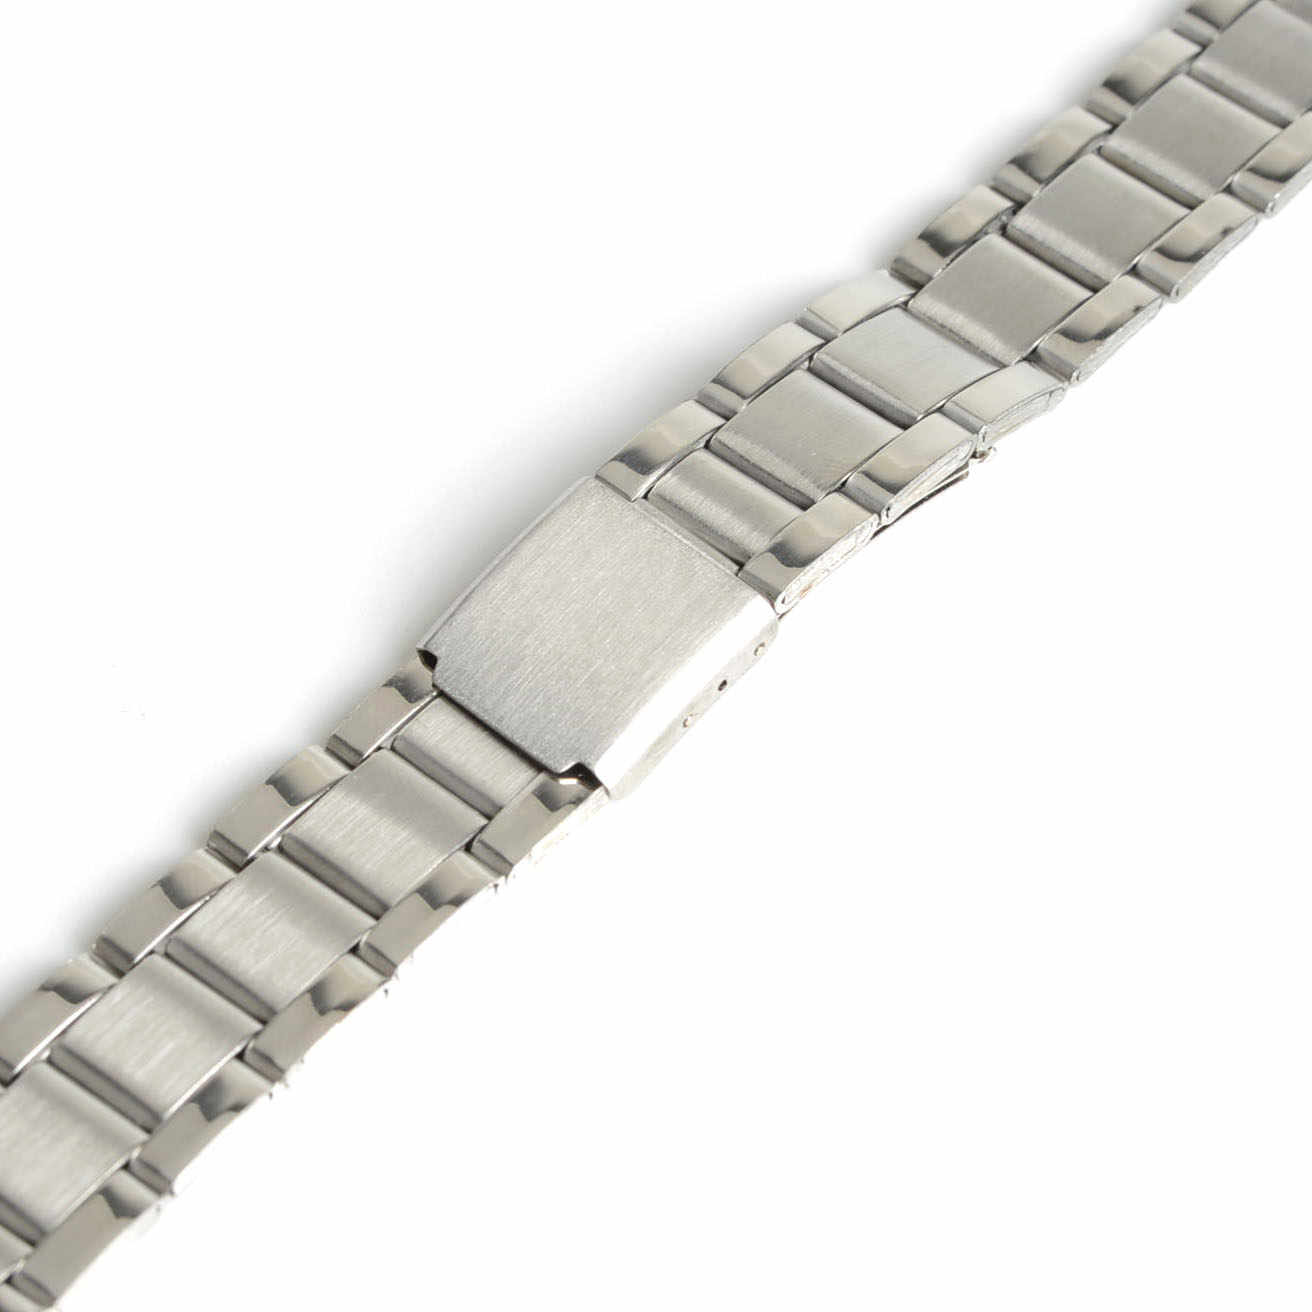 2019 New Men Women 12mm Silver Stainless Steel Watch Band Strap Bracelet Straight End Model 1,Wrist Watchband SB0578